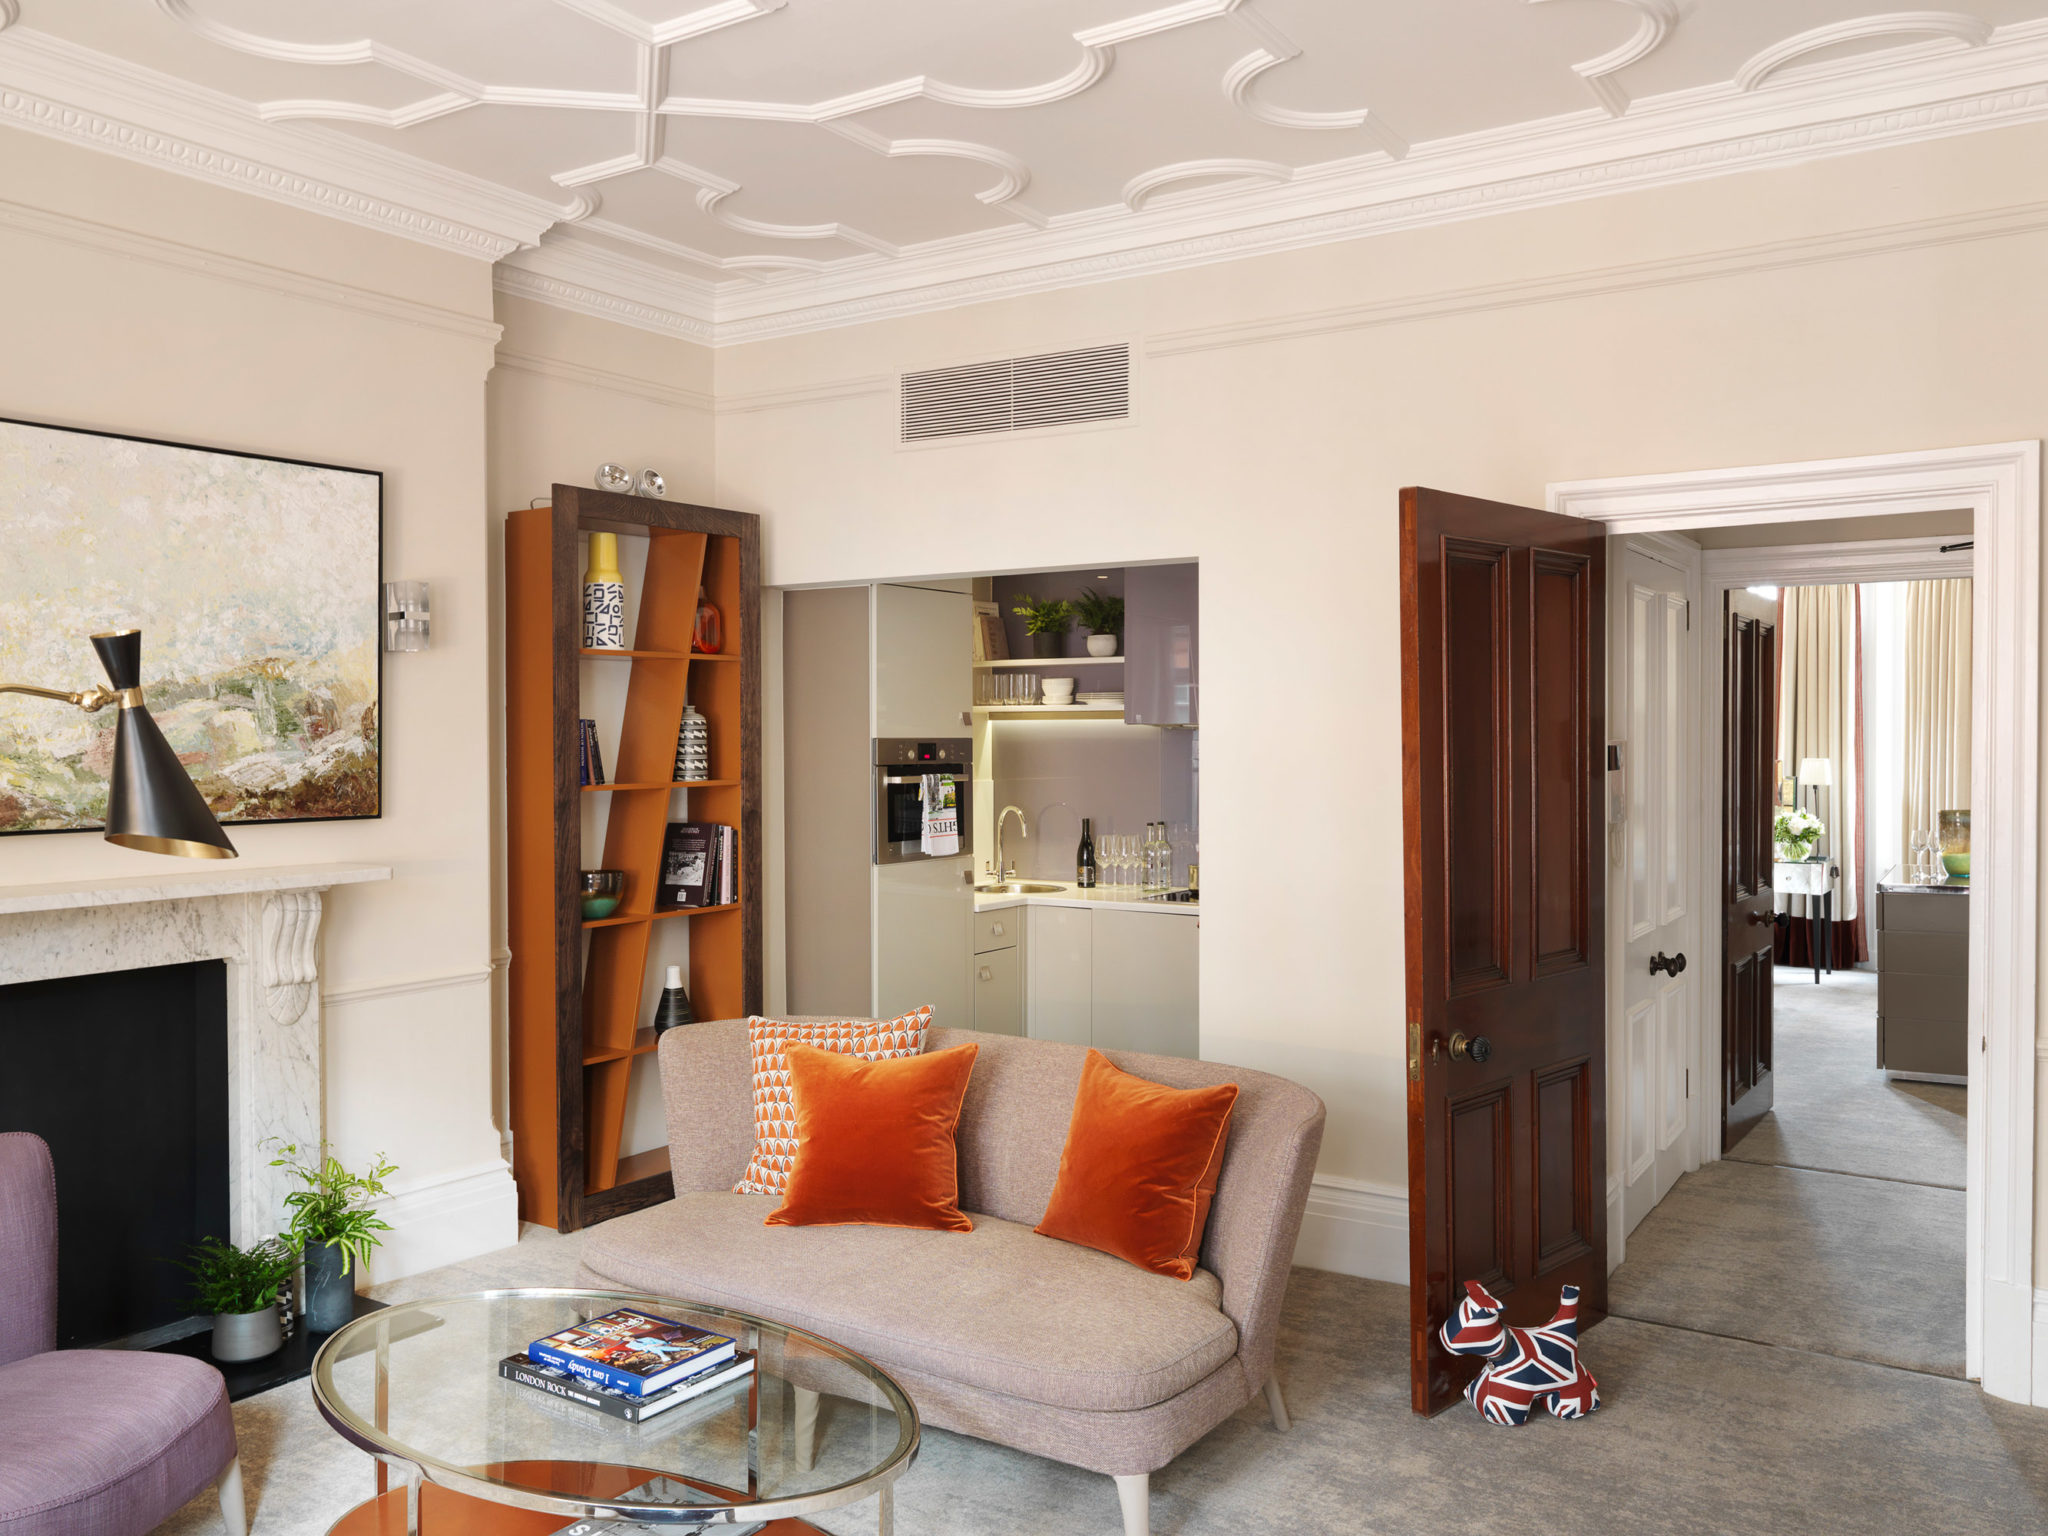 INSIDE LOOK: The Townhouse Residences at The Athenaeum Hotel